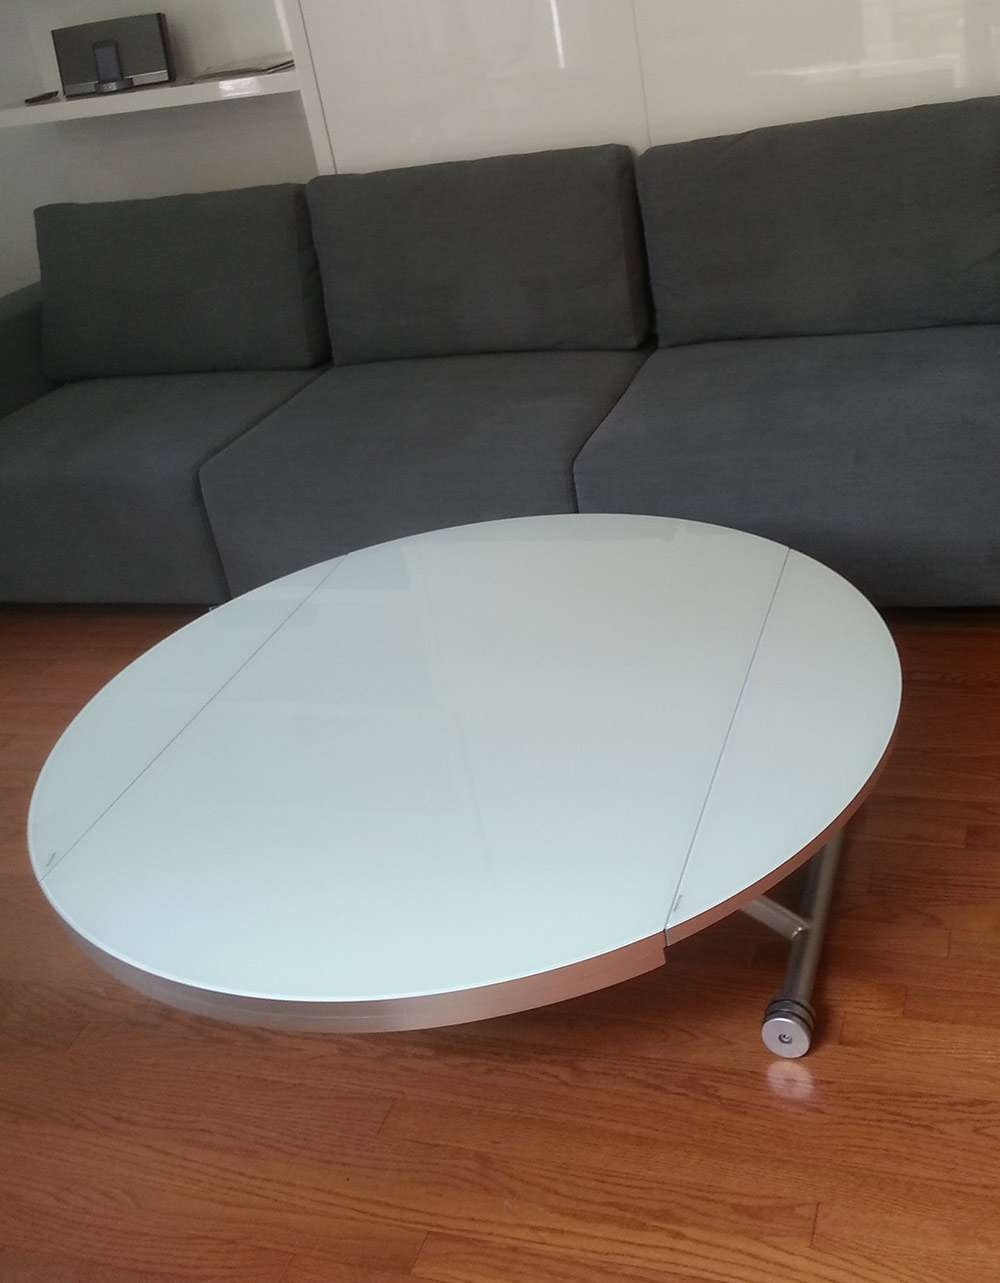 Expand Furniture Regarding Famous Round Coffee Tables (View 10 of 20)